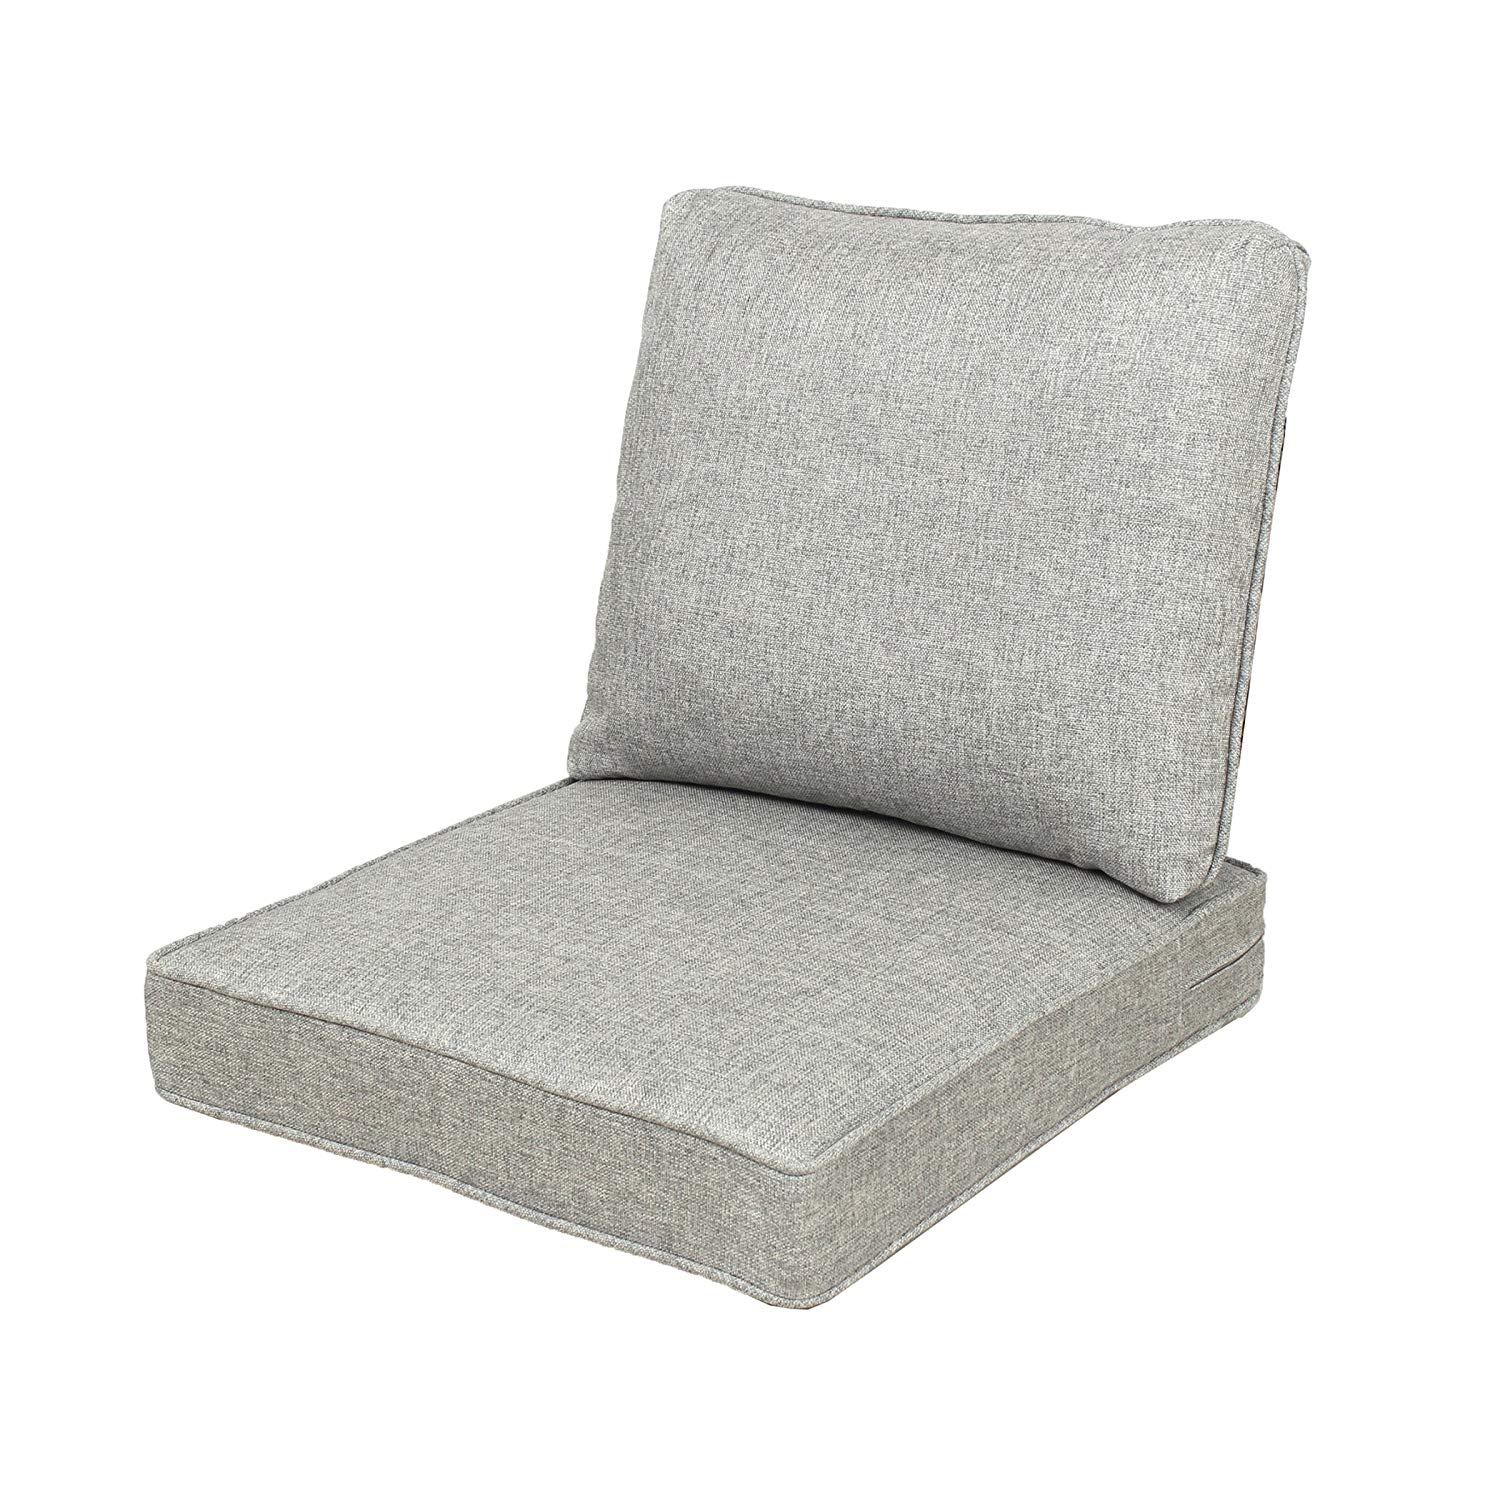 Quality Outdoor Living All Weather Deep Seating Patio Chair Seat and Back Cushion Set, 22-Inch by 25-Inch, Grey